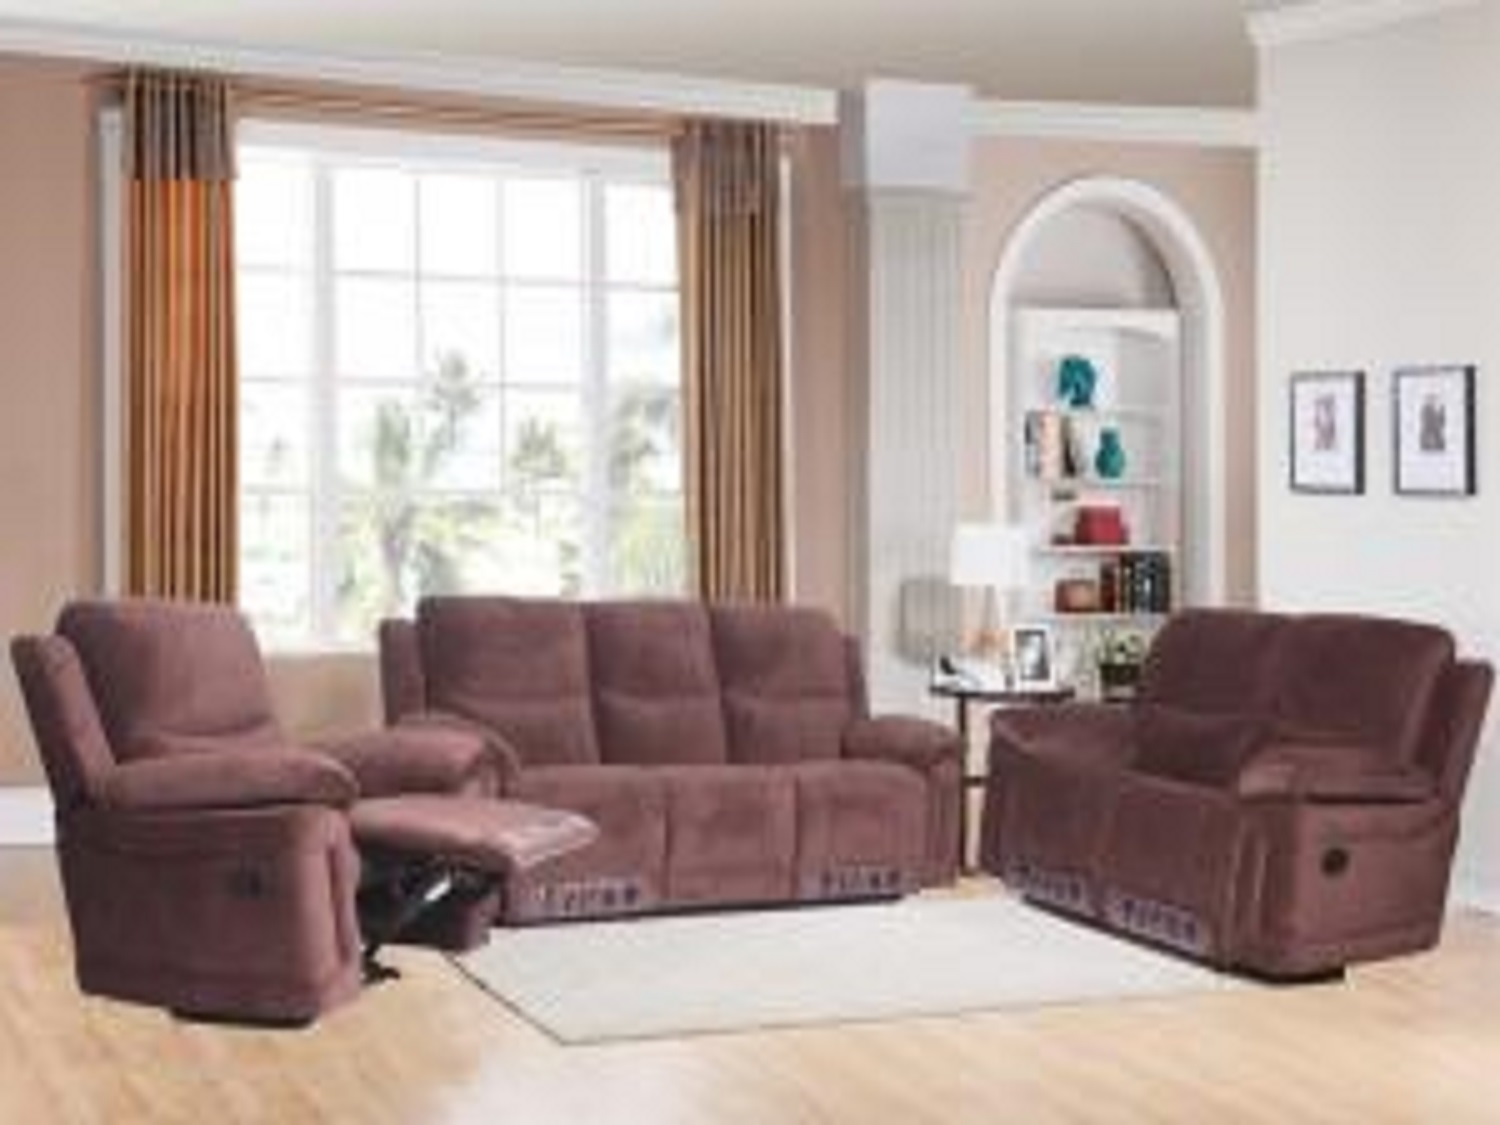 ALORE BROWN Sectionals & Recliners, K166, Recliners by Midha Furniture to Brampton, Mississauga, Etobicoke, Toronto, Scraborough, Caledon, Oakville, Markham, Ajax, Pickering, Oshawa, Richmondhill, Kitchener, Hamilton and GTA area